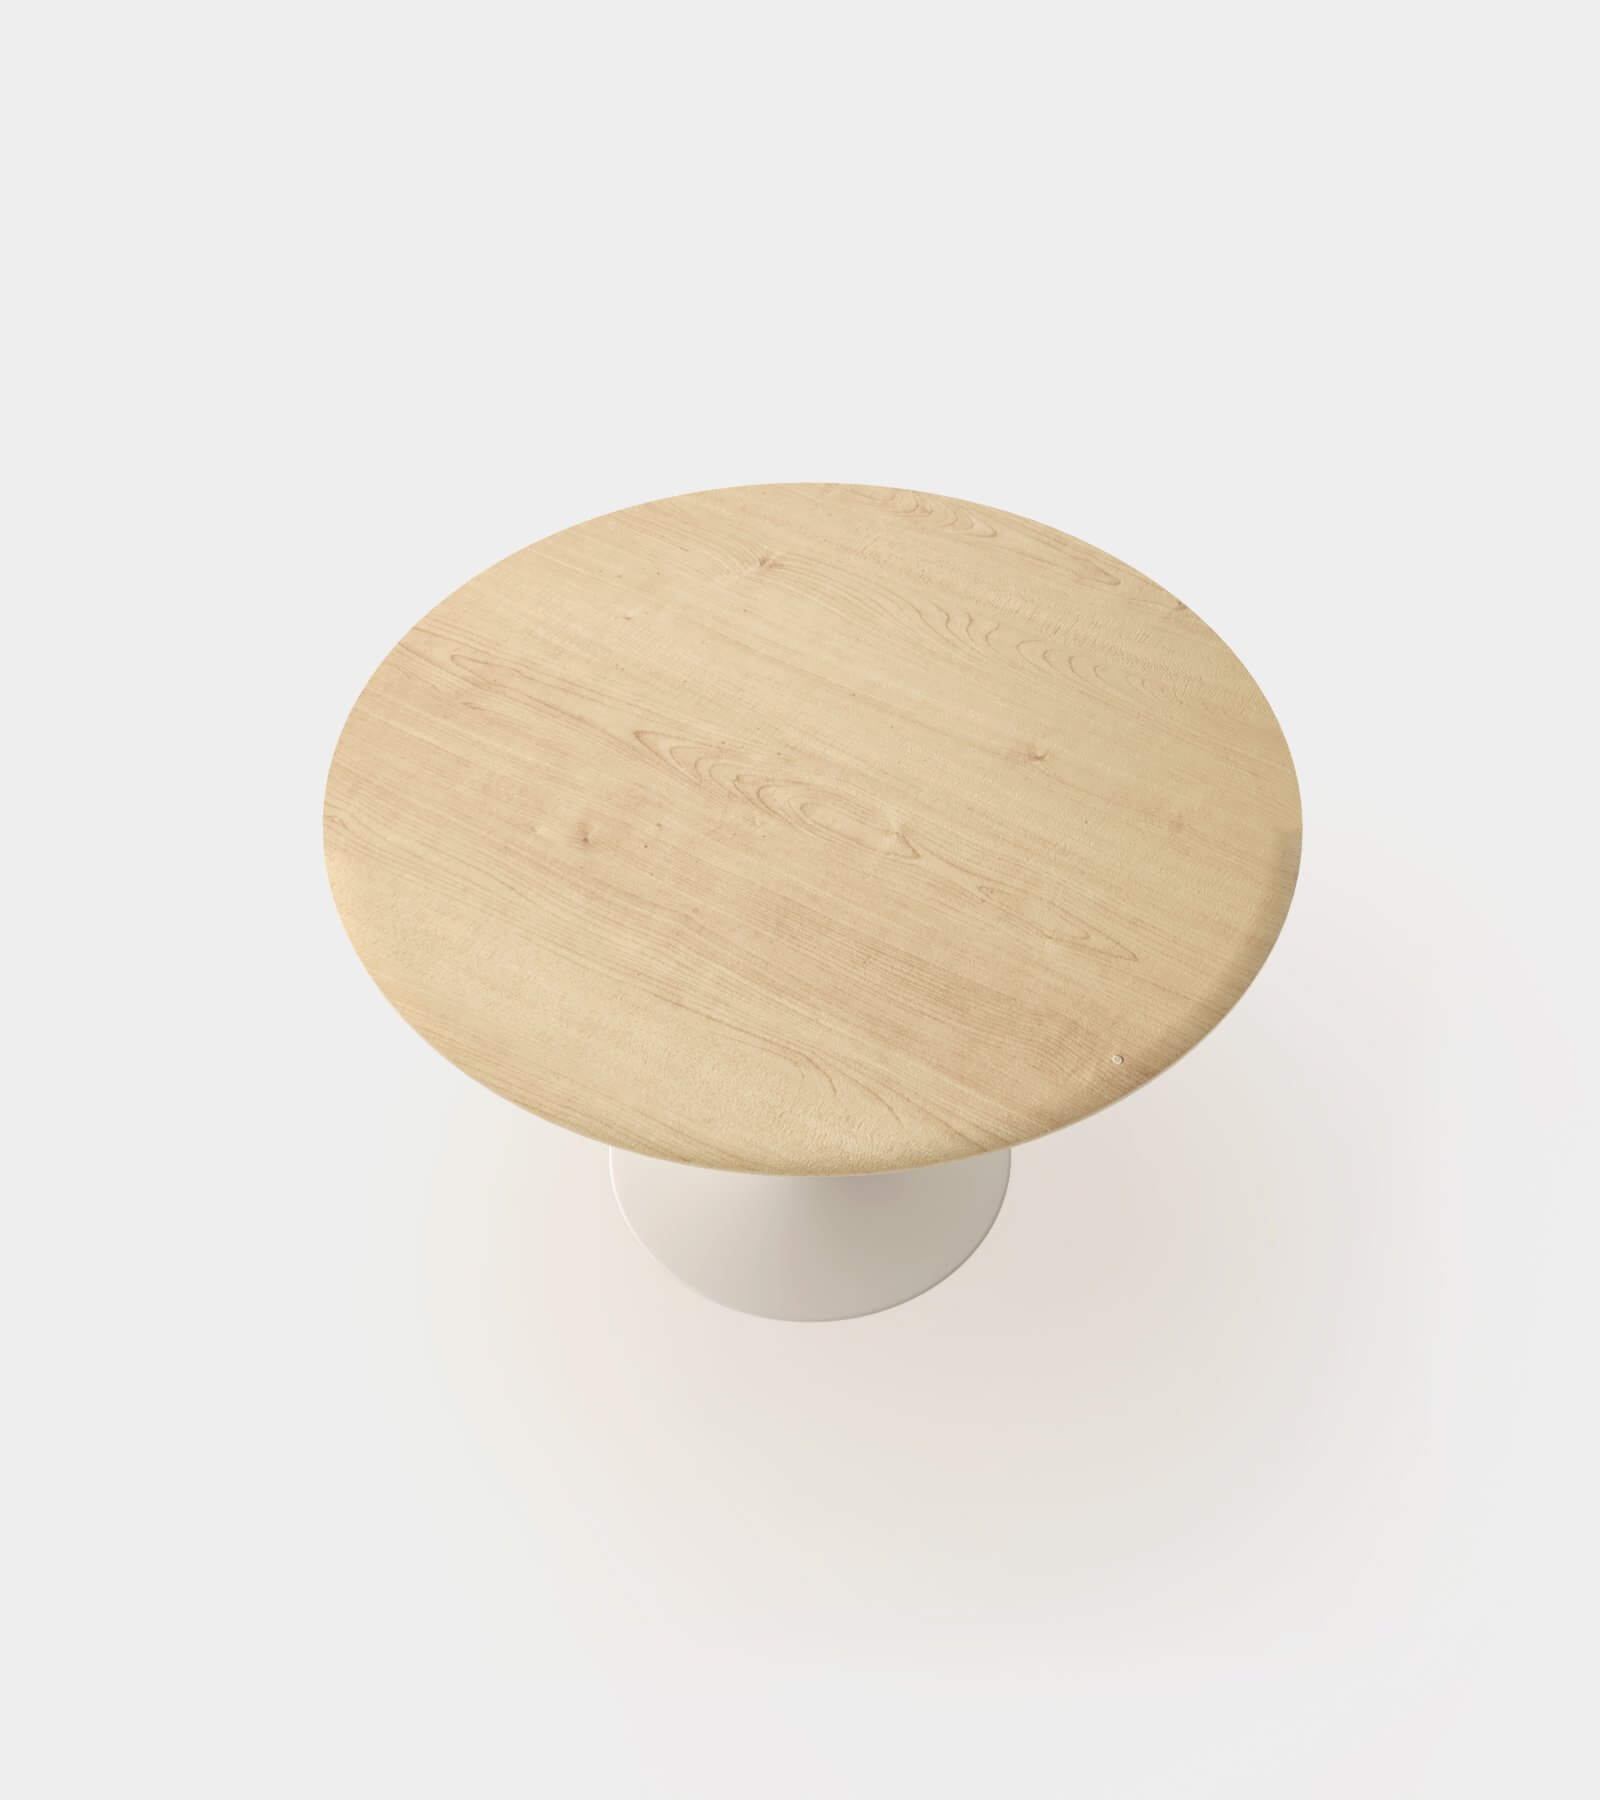 Dining table round for 4 people 2 - 3D Model